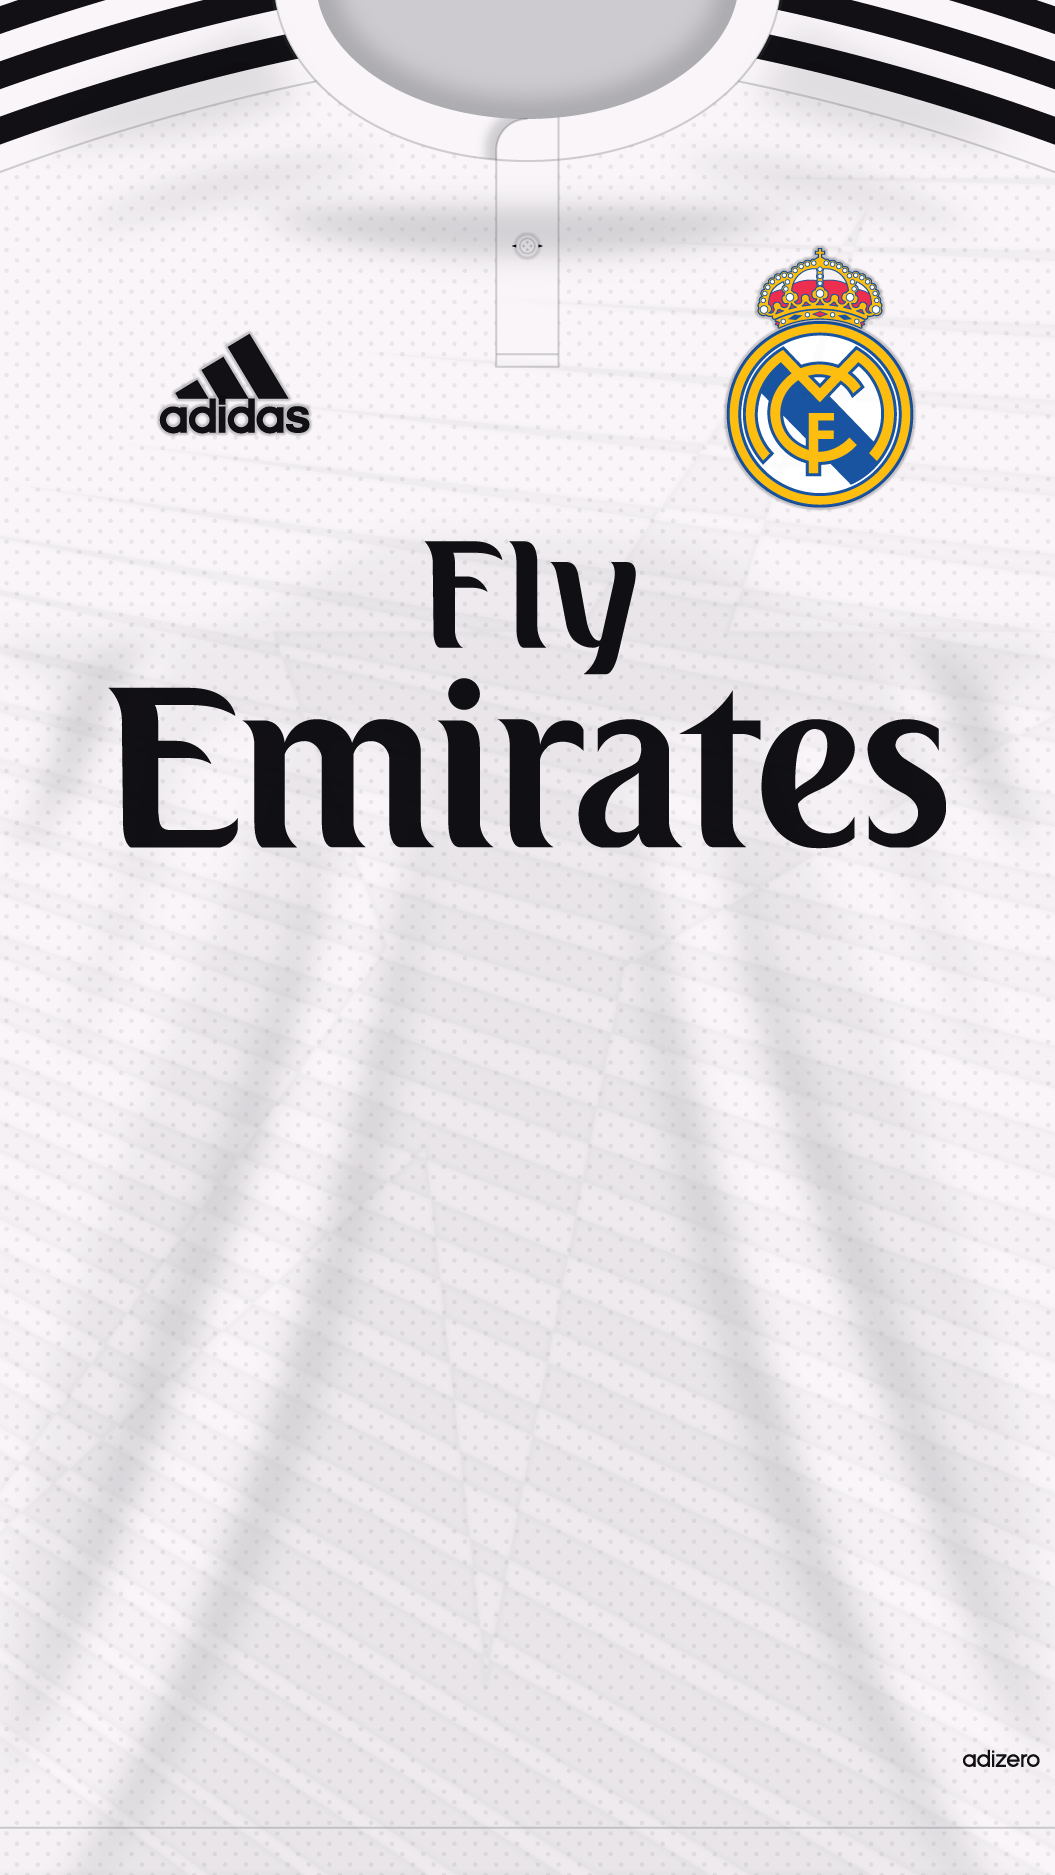 Real Madrid 2018 2019 Wallpapers Wallpaper Cave